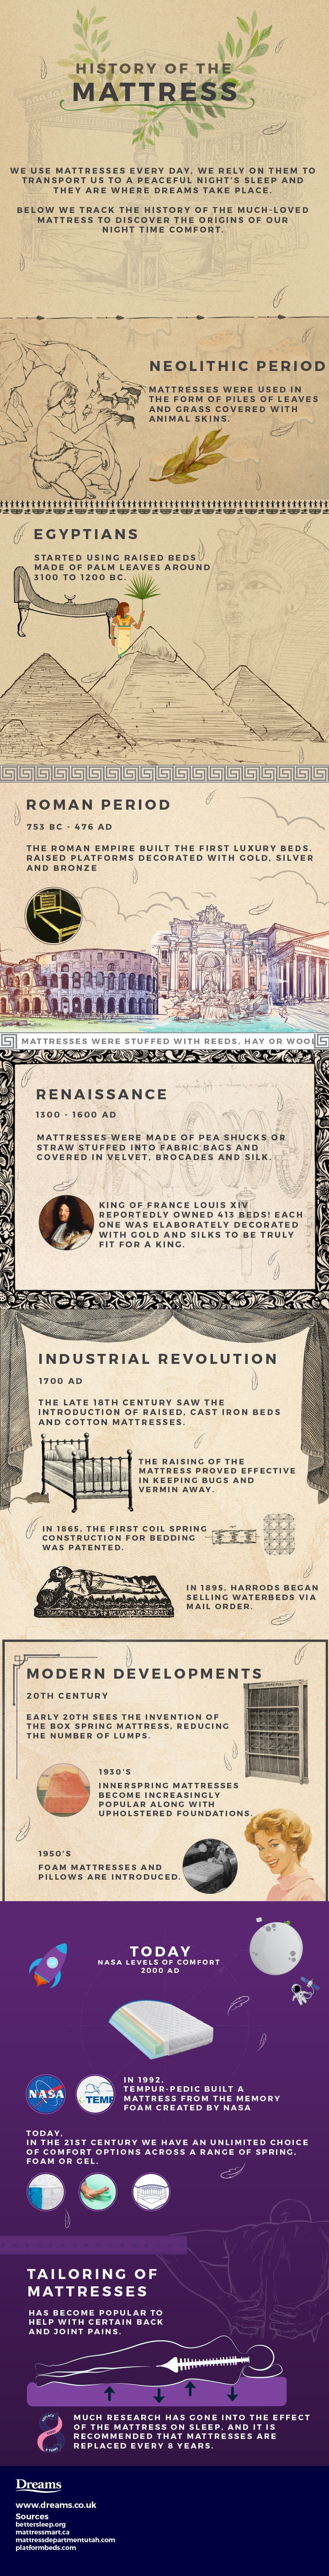 History of the Mattress Infographic for Dreams